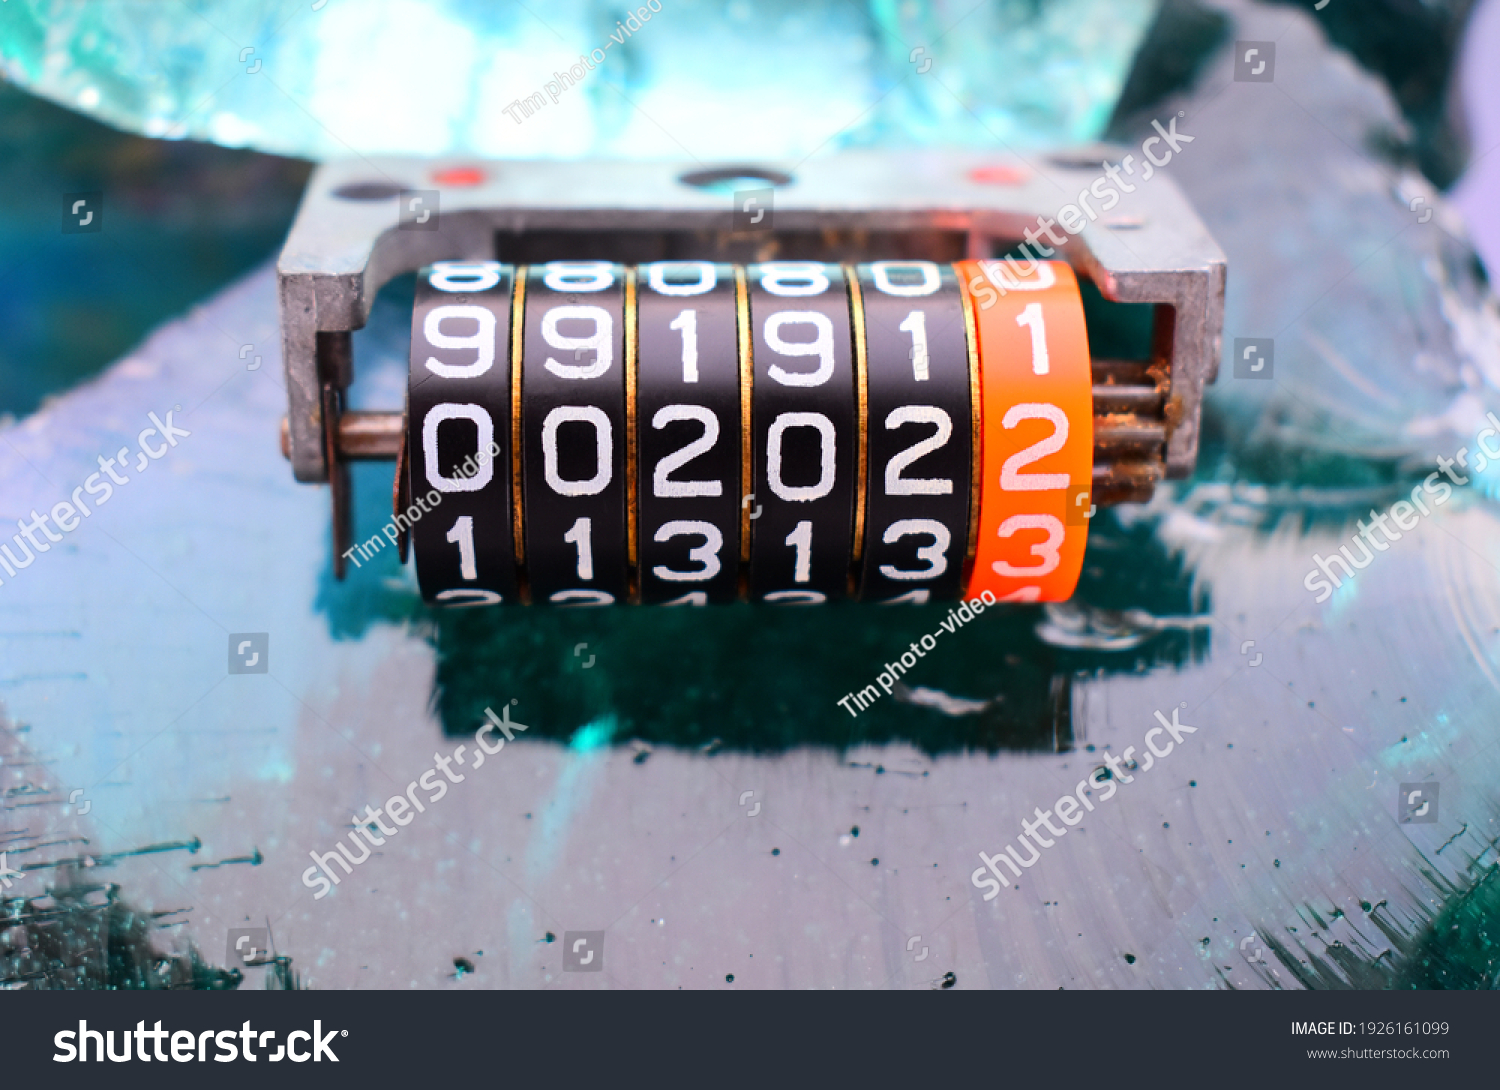 stock-photo-odometer-shows-the-numbers-g